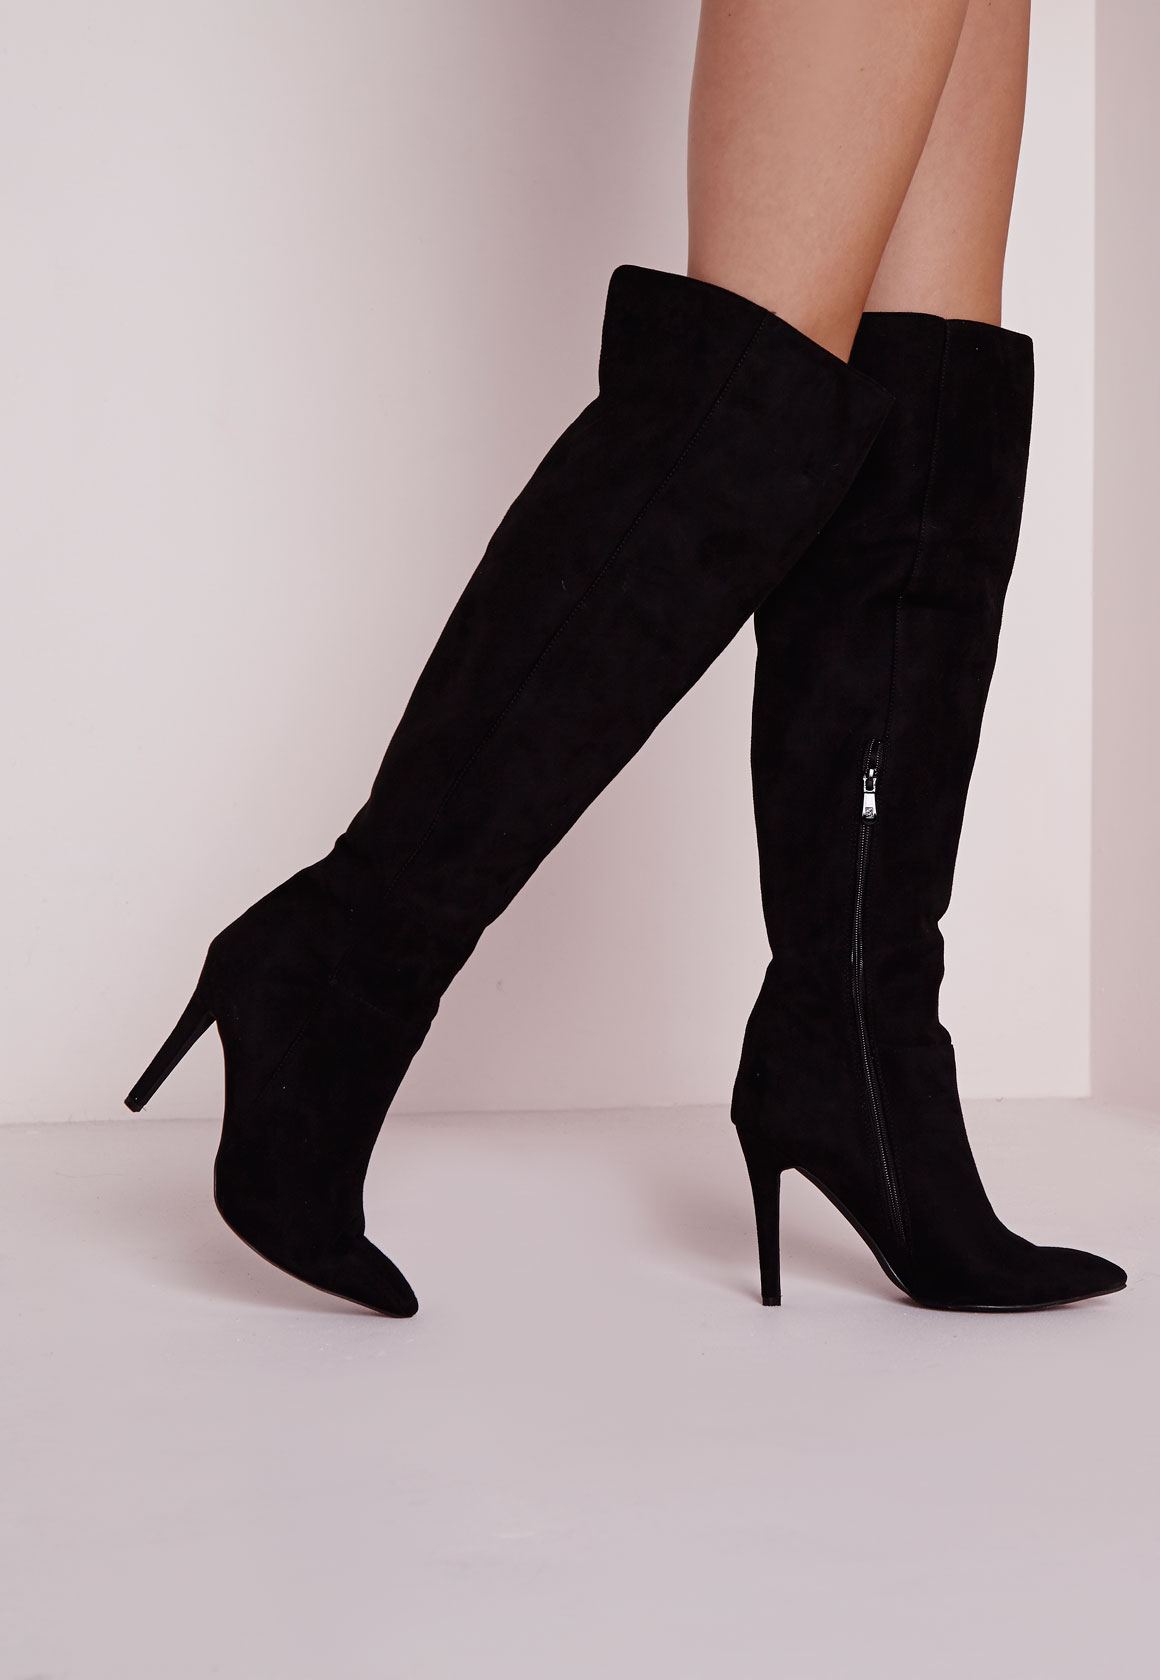 Fashion Shop - High Stiletto Heeled Boots Black